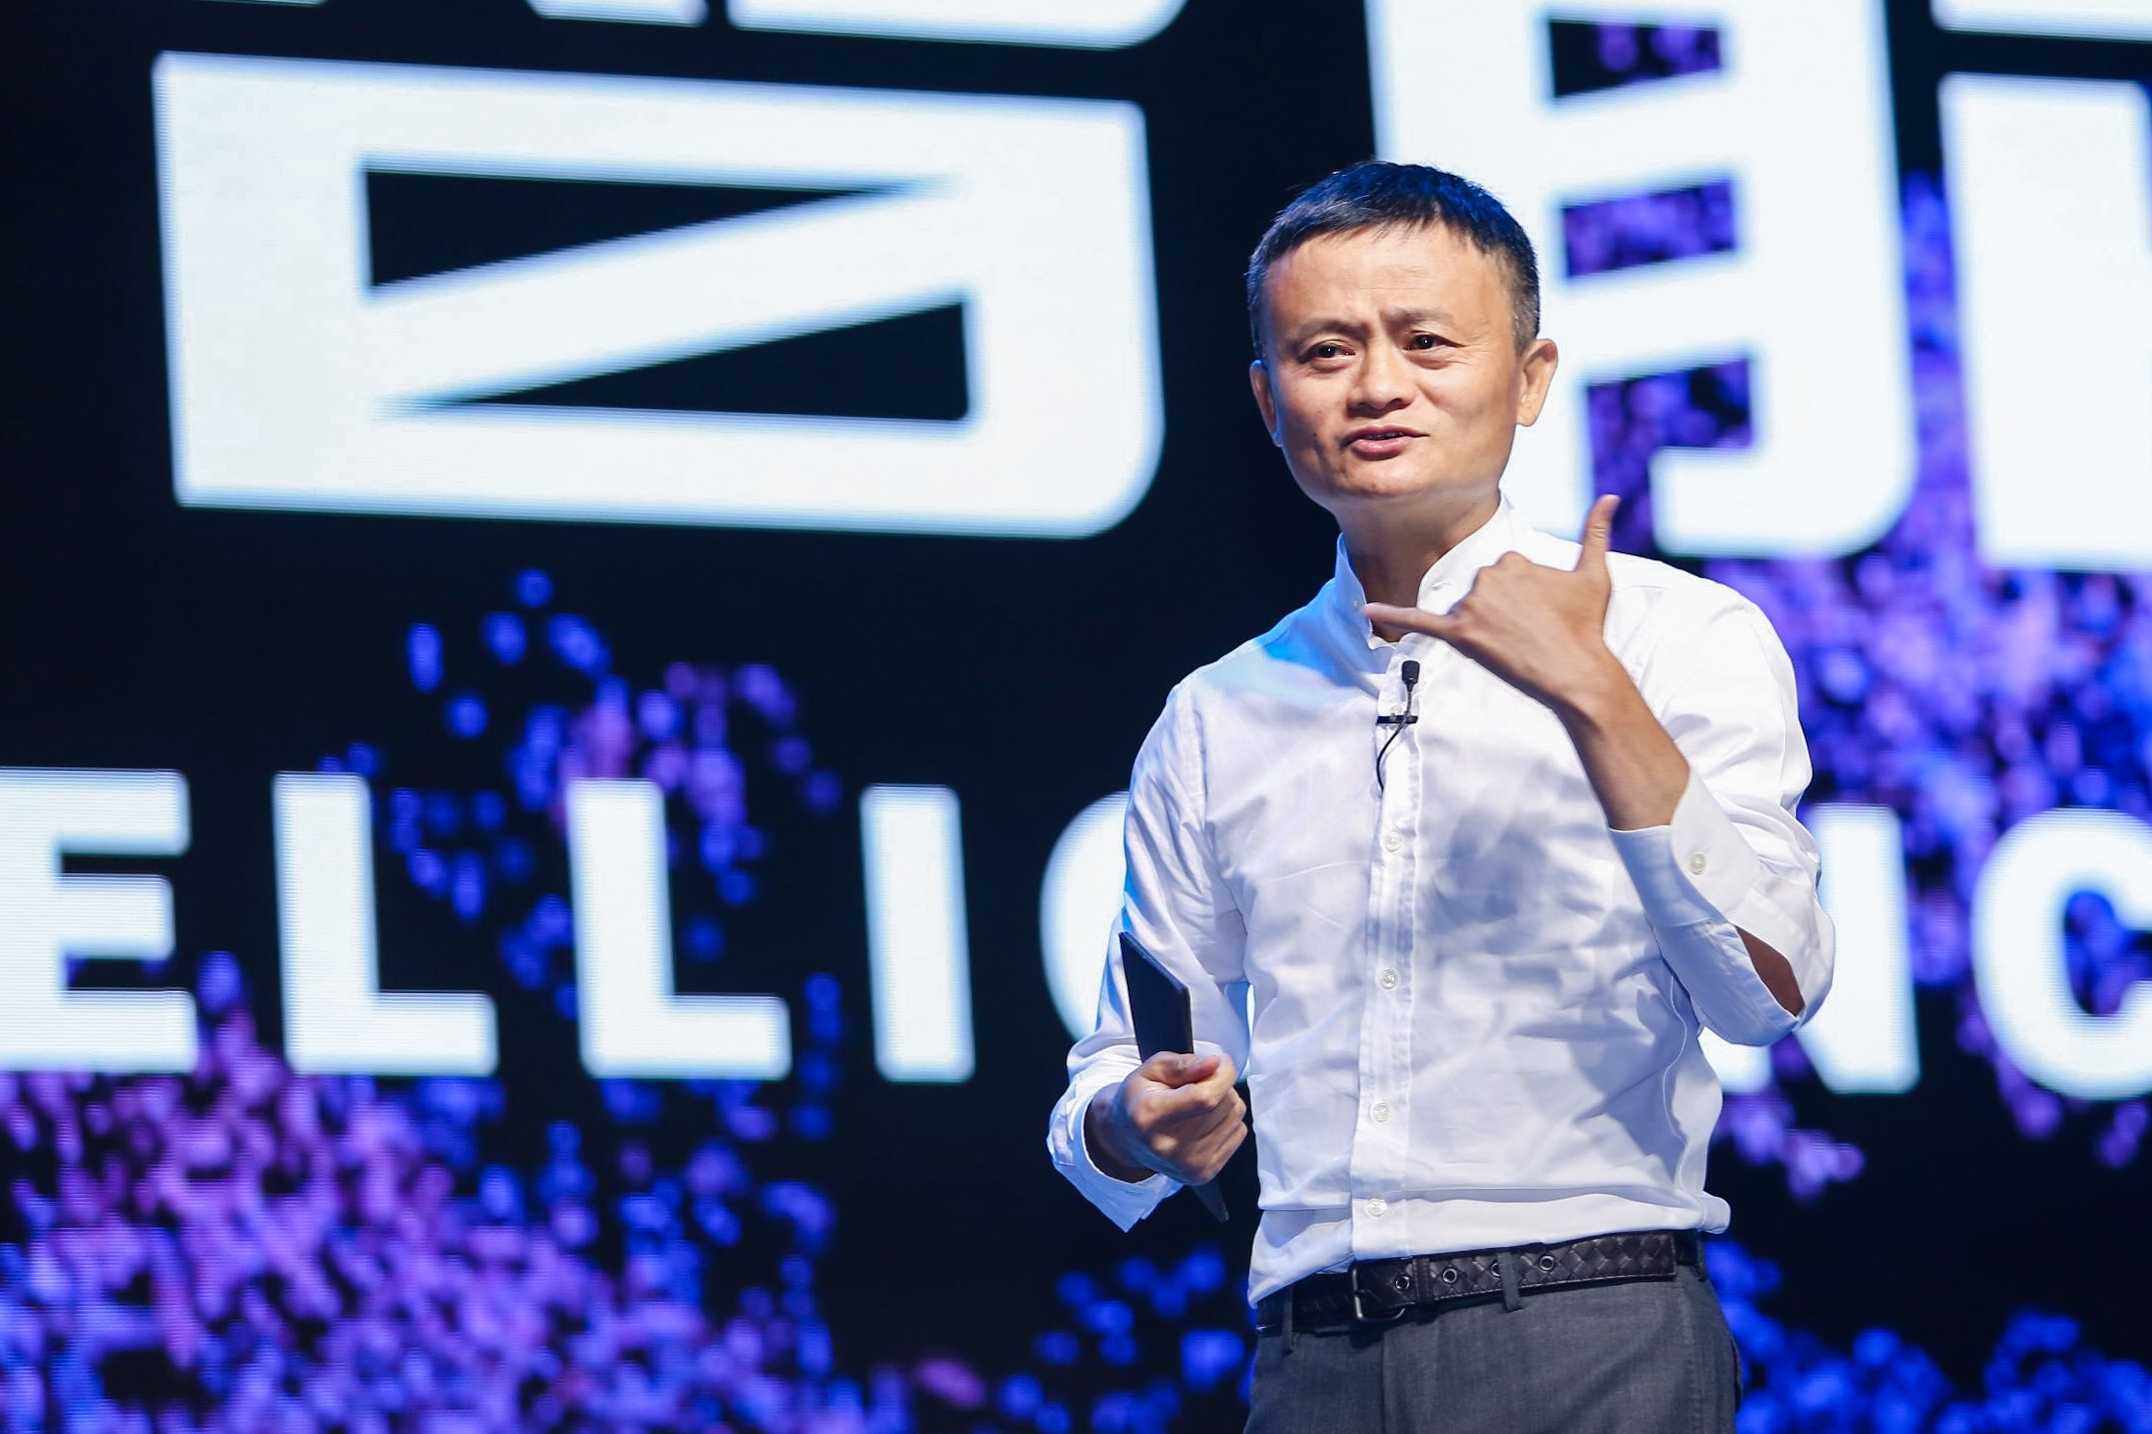 Jack Ma Goes for Blockchain, But Bitcoin Is